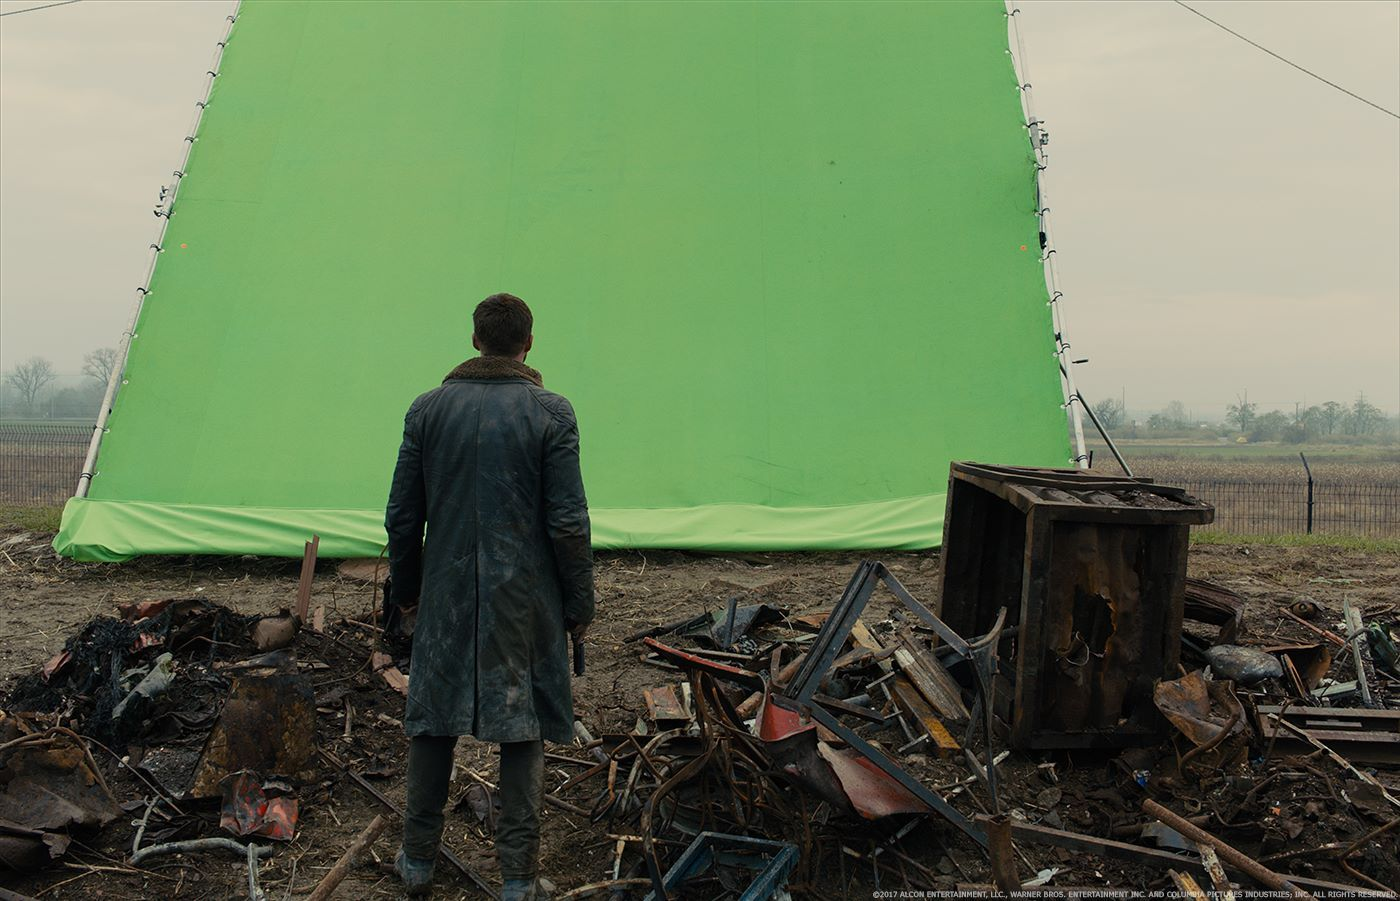 Eight teams and 1,190 shots go into Blade Runner 2049s